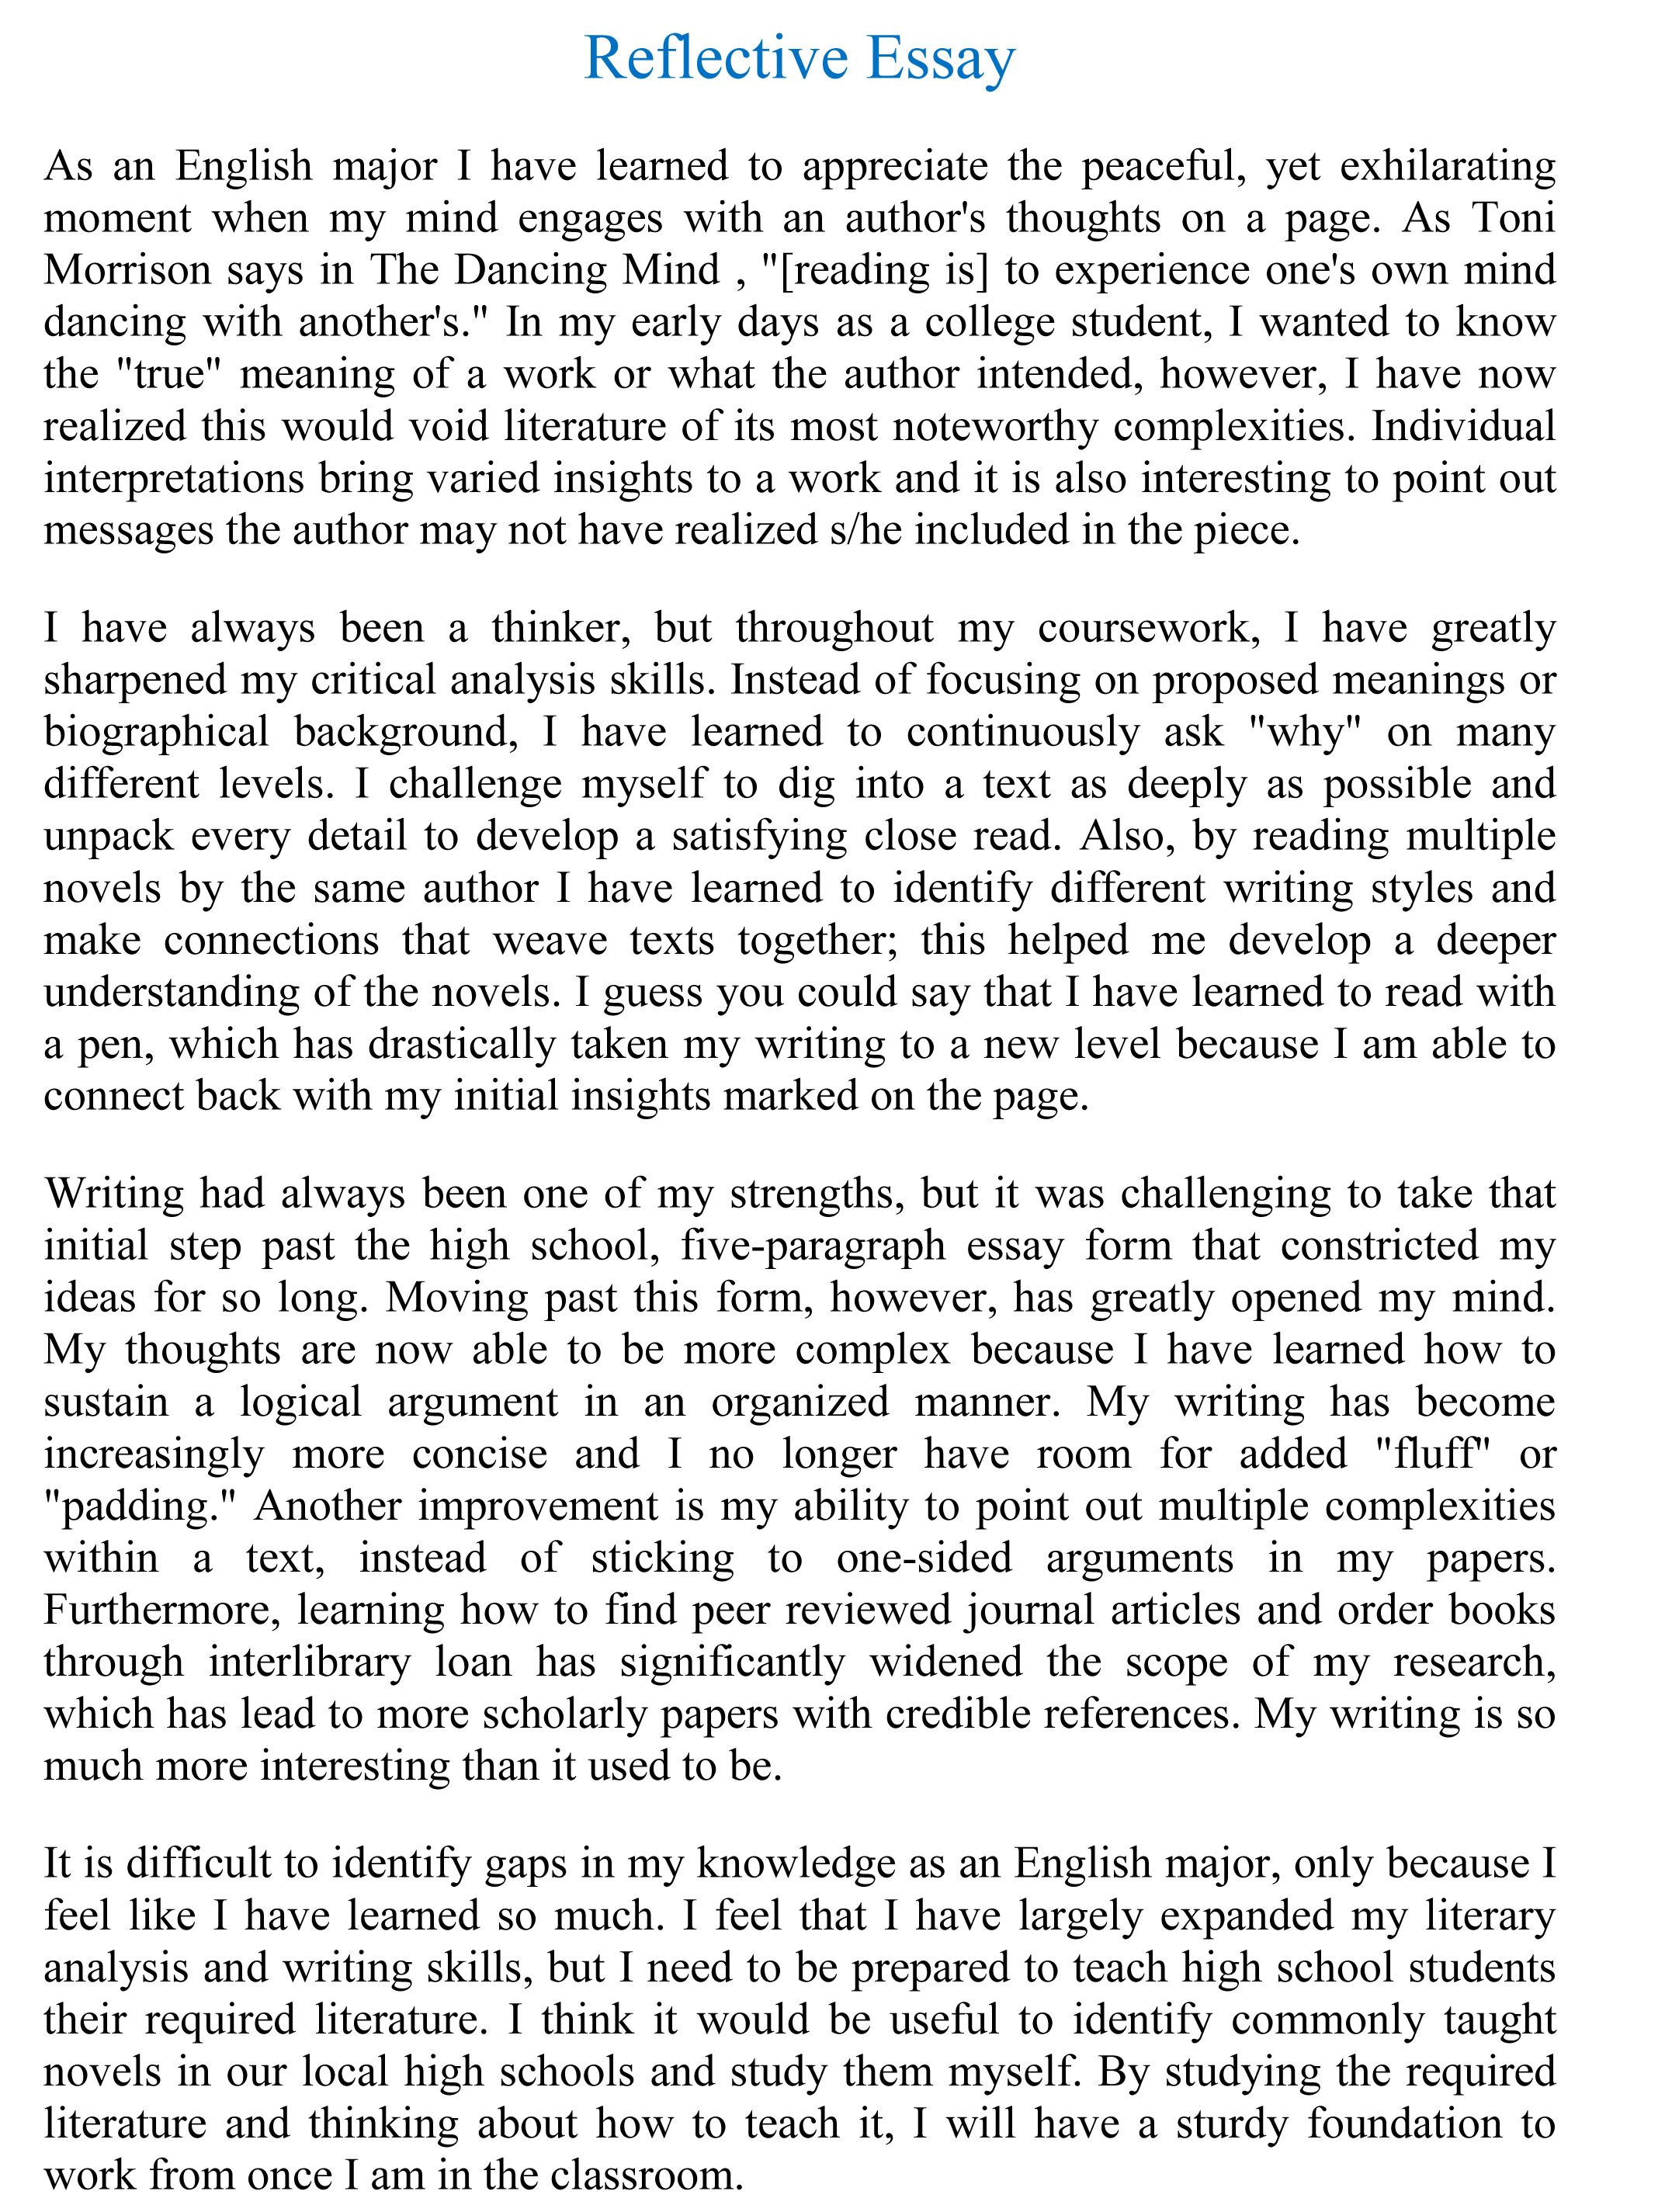 ielts good essays - English Reflective Essay Examples